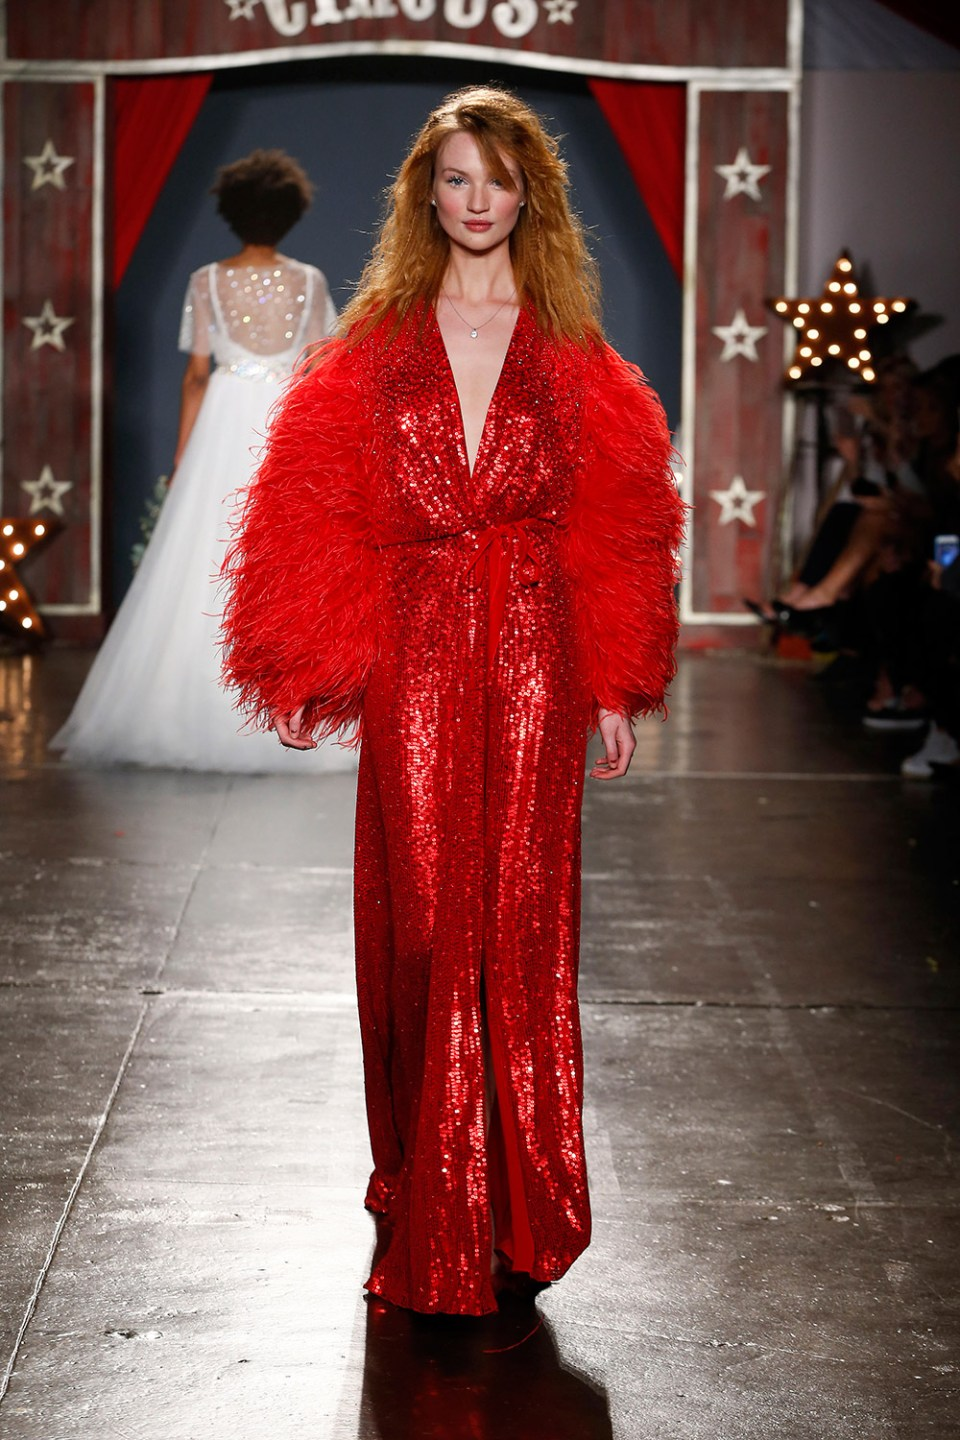 Red bridal gown. Jenny Packham 2018 Bridal Collection. tp://www.theweddingnotebook.com